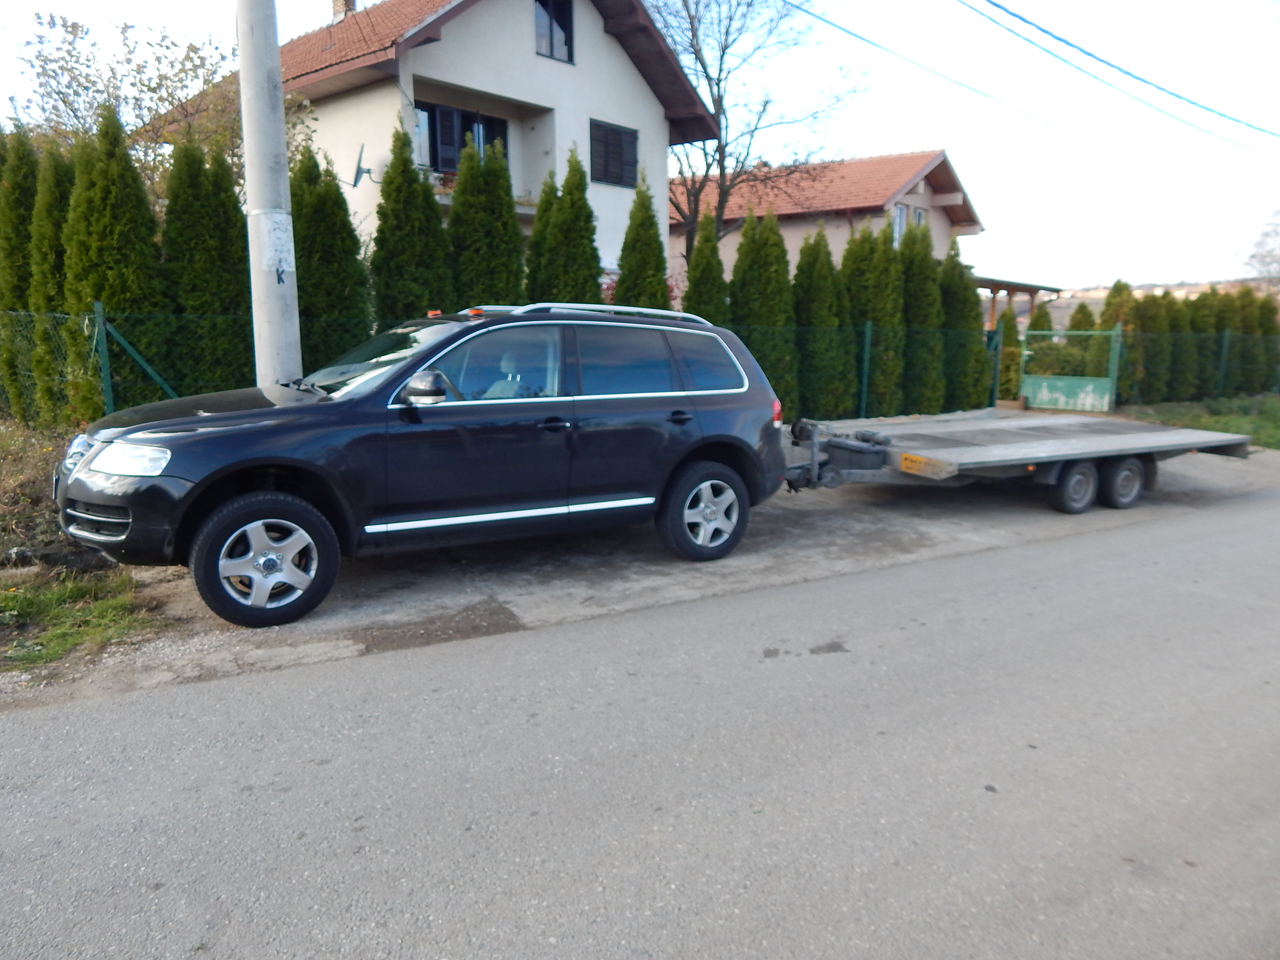 TOWING SERVICE KICA TRANS Towing services Mladenovac - Photo 1